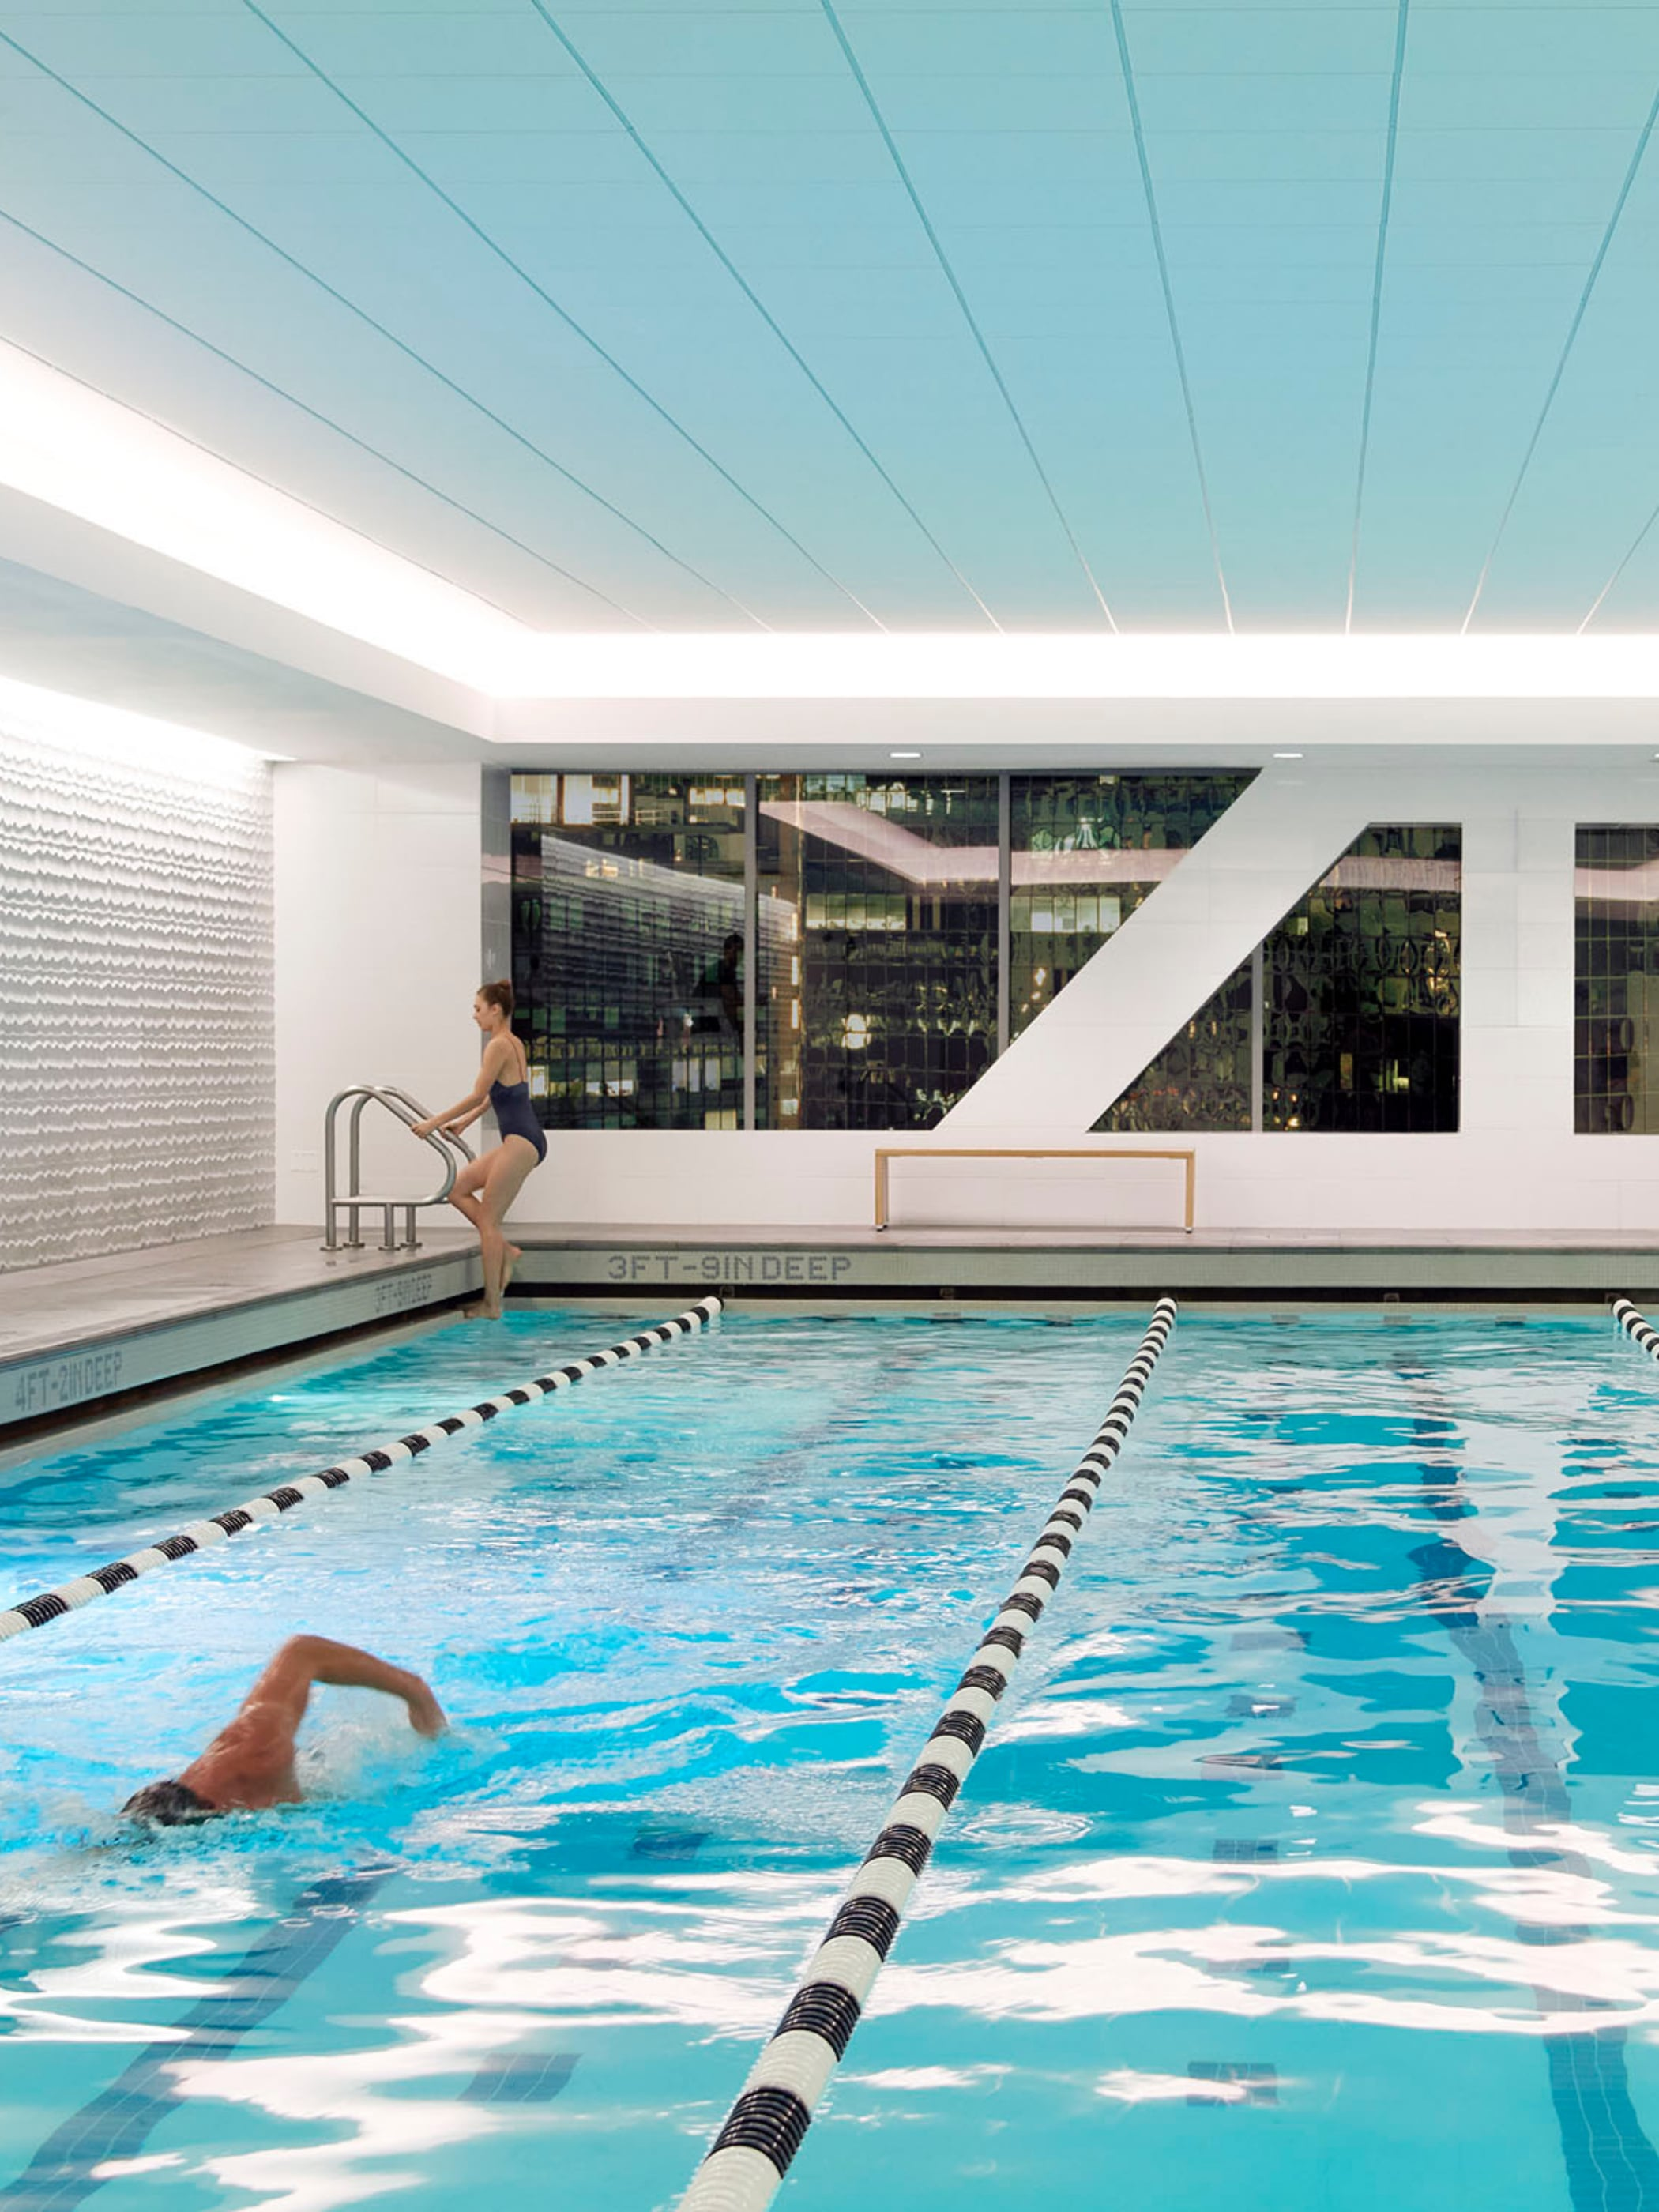 Sports Club In New York City On The Upper West Side Equinox